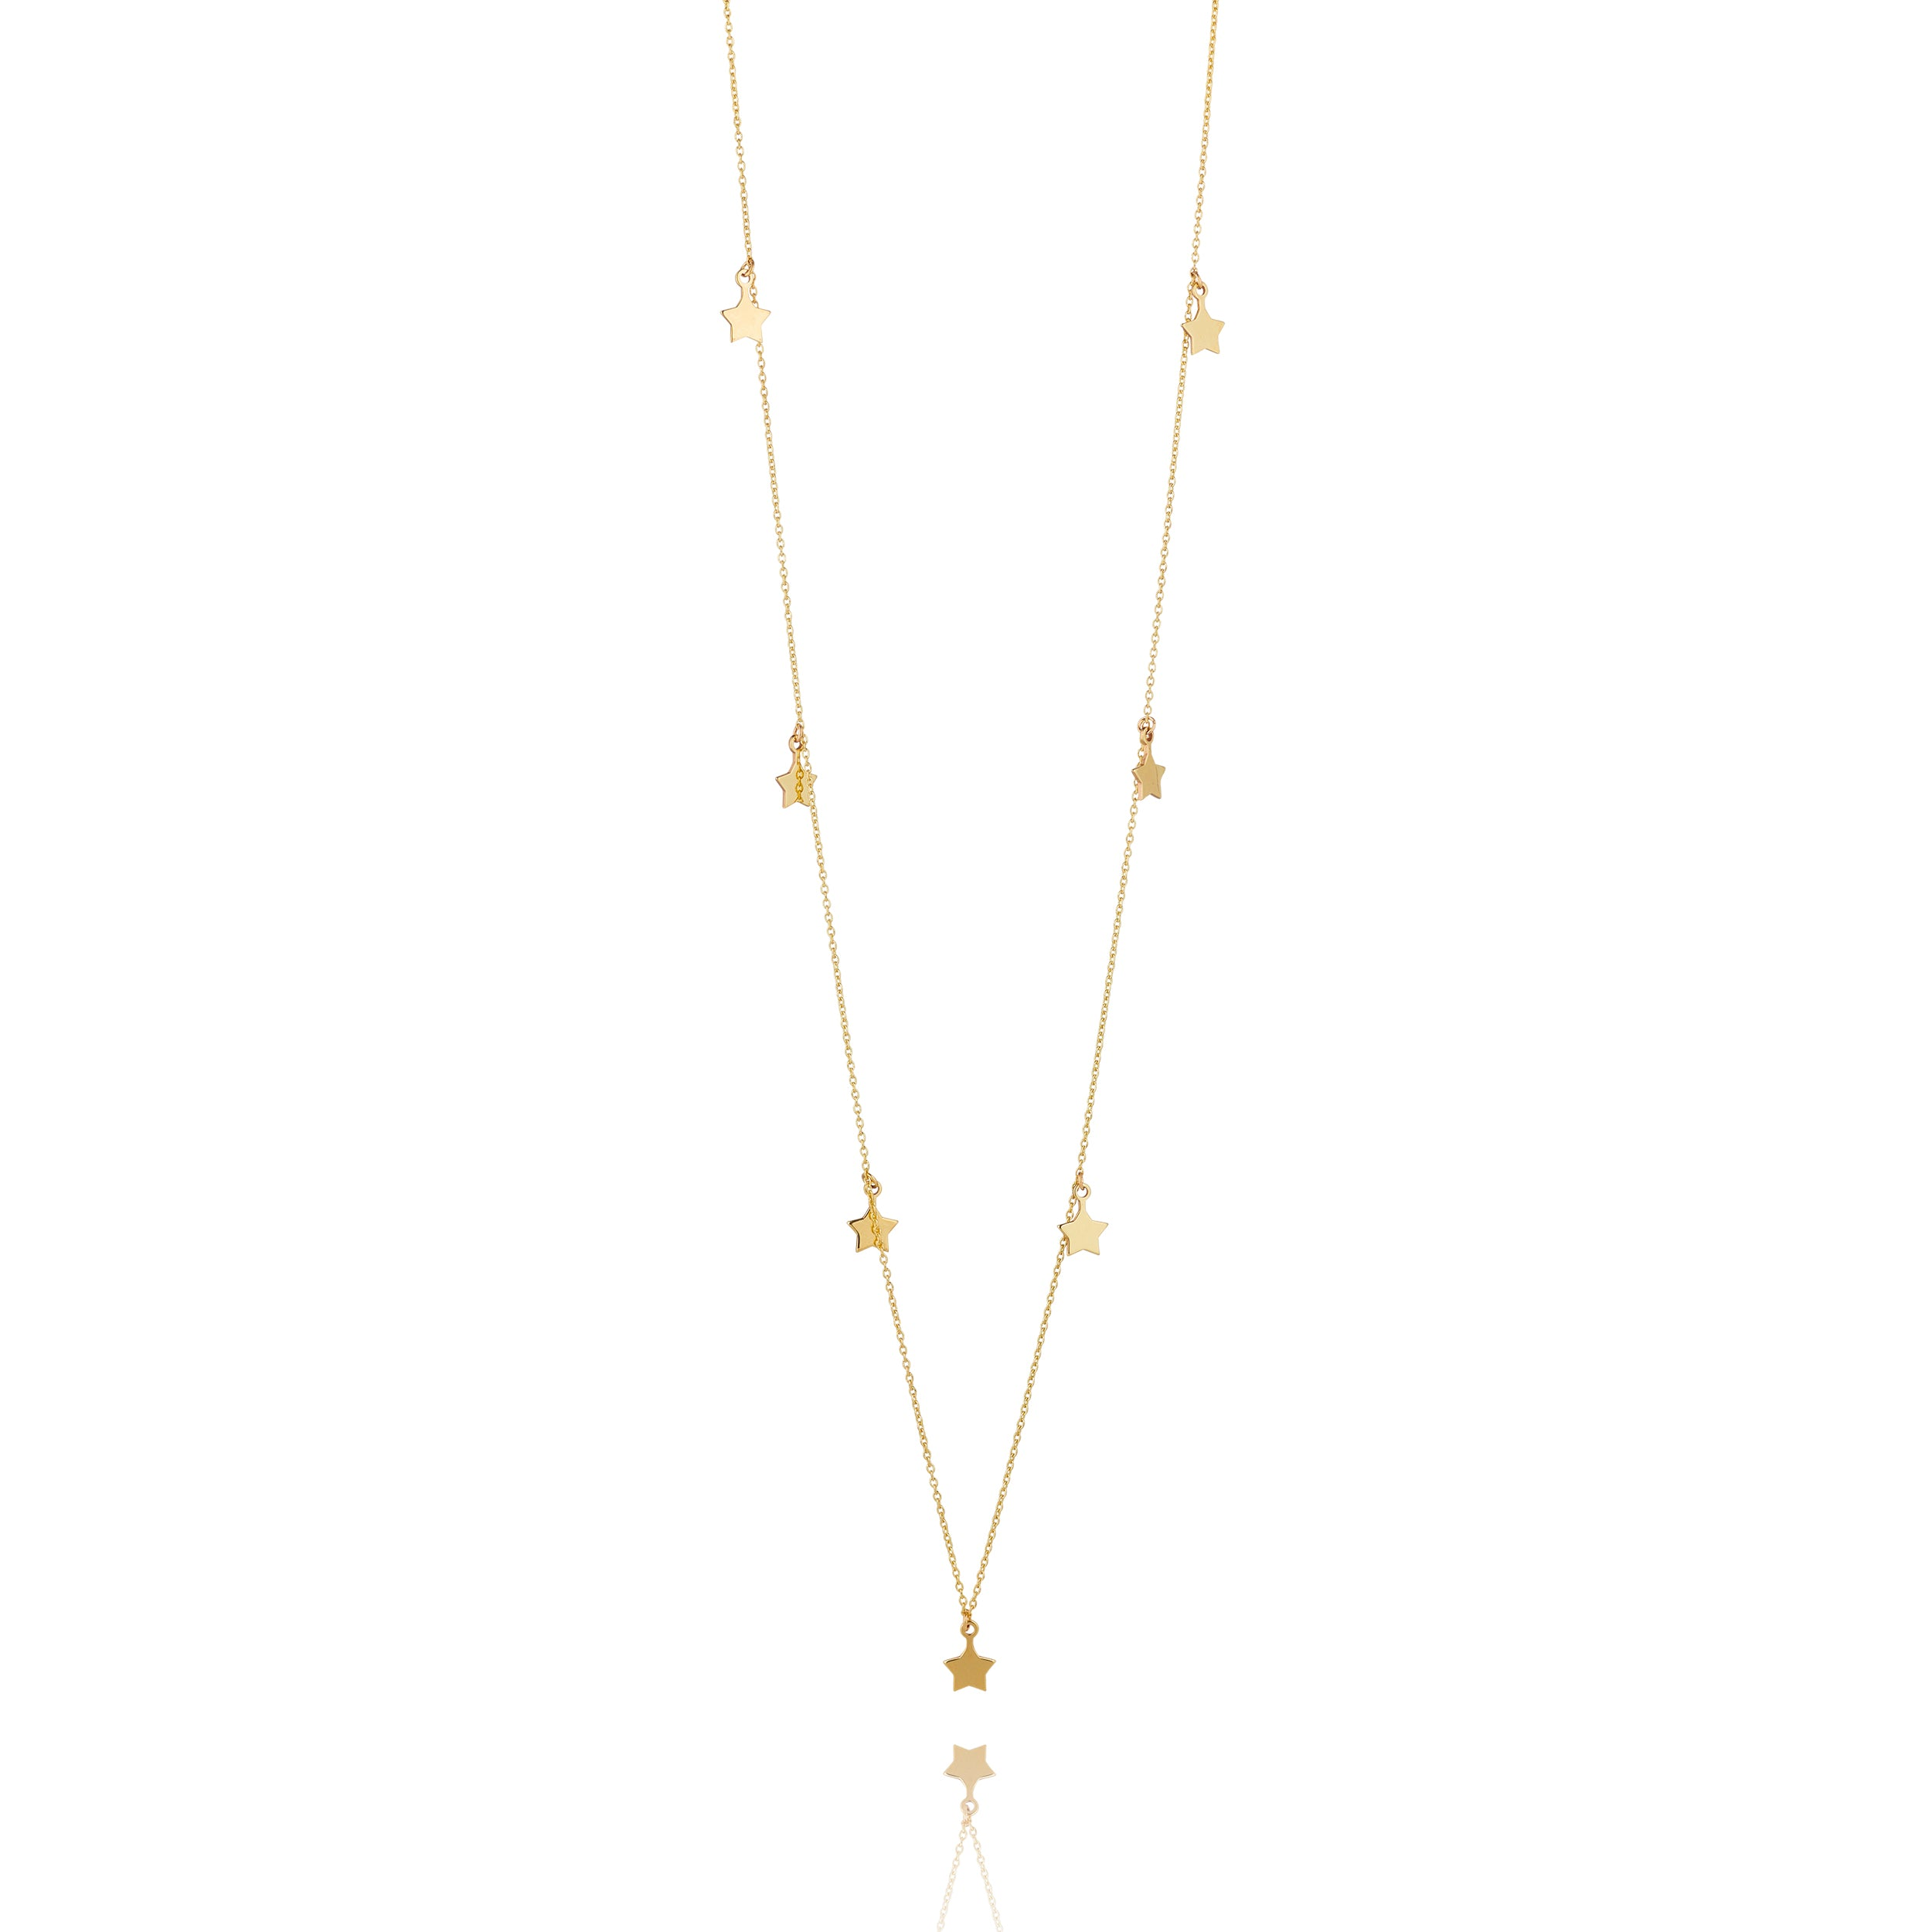 9kt Gold Seven Star Necklace - MoMuse Jewellery